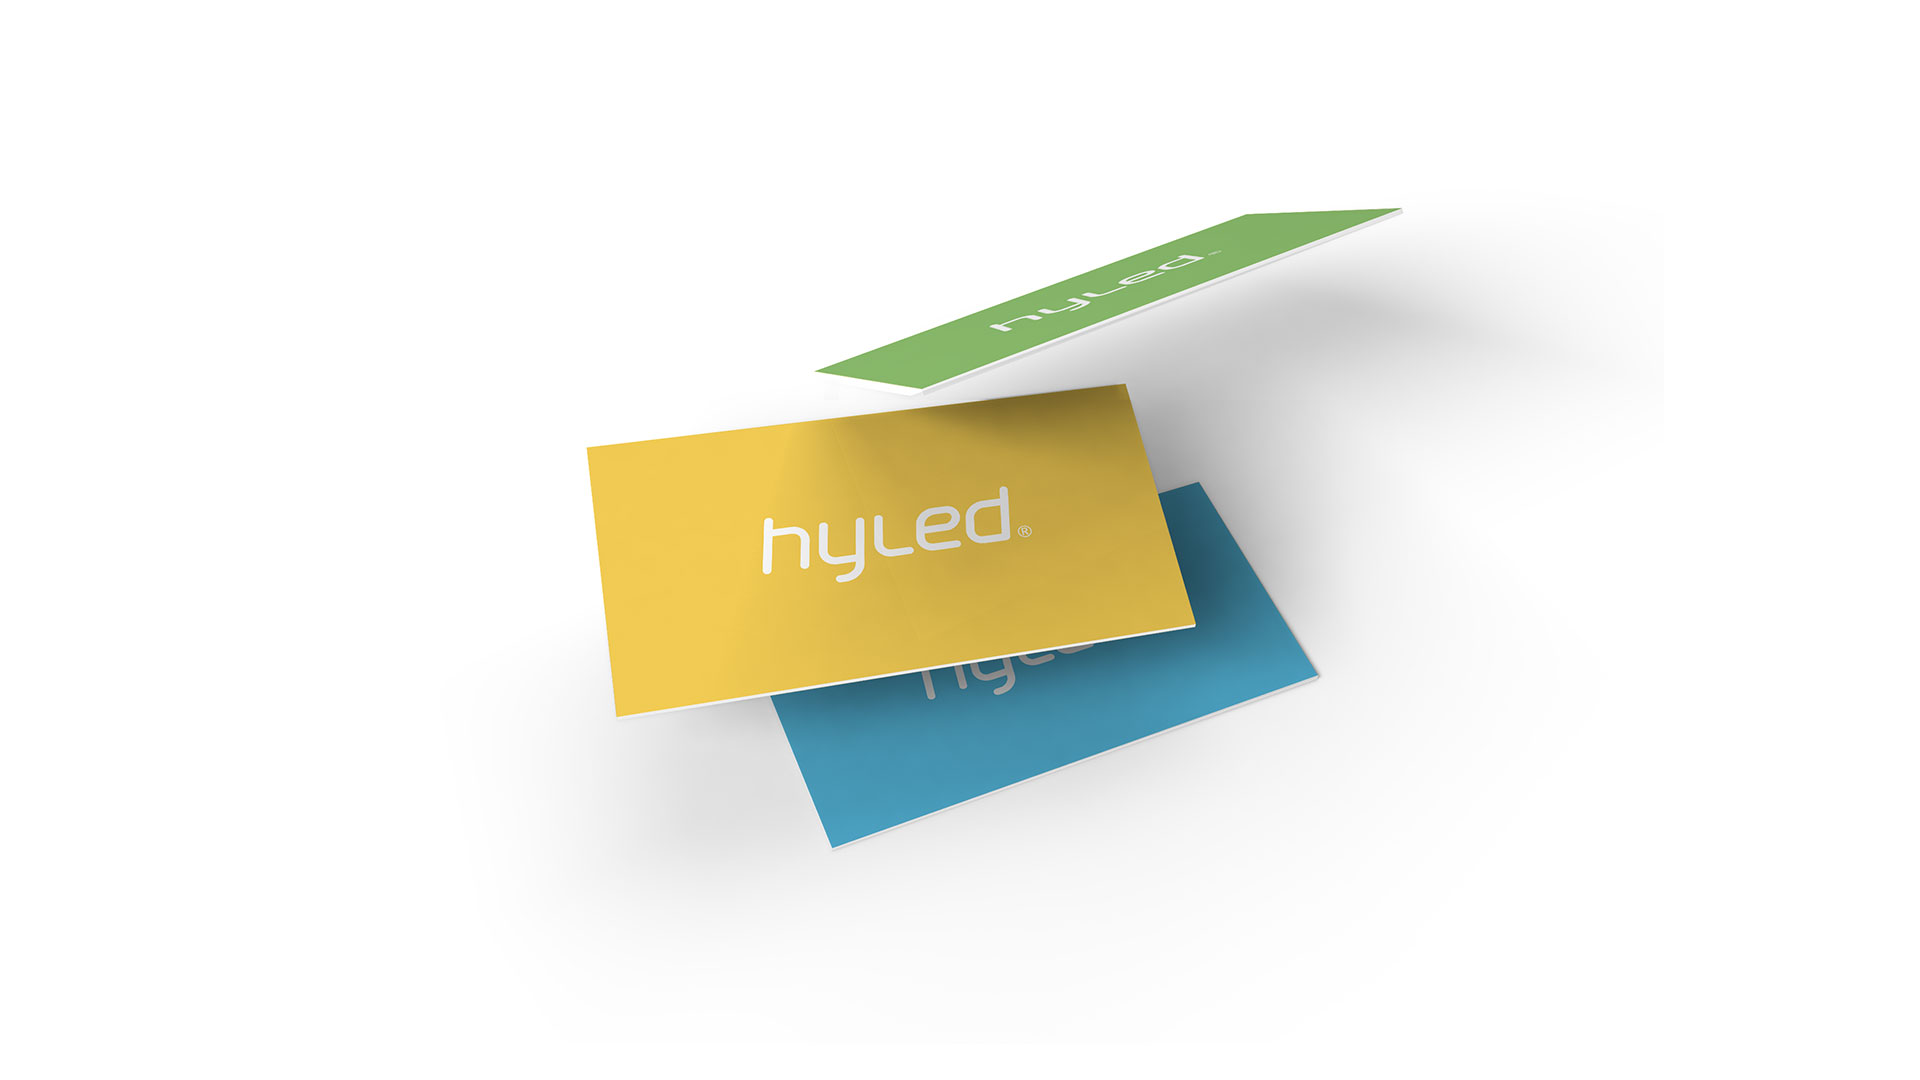 hyled business card